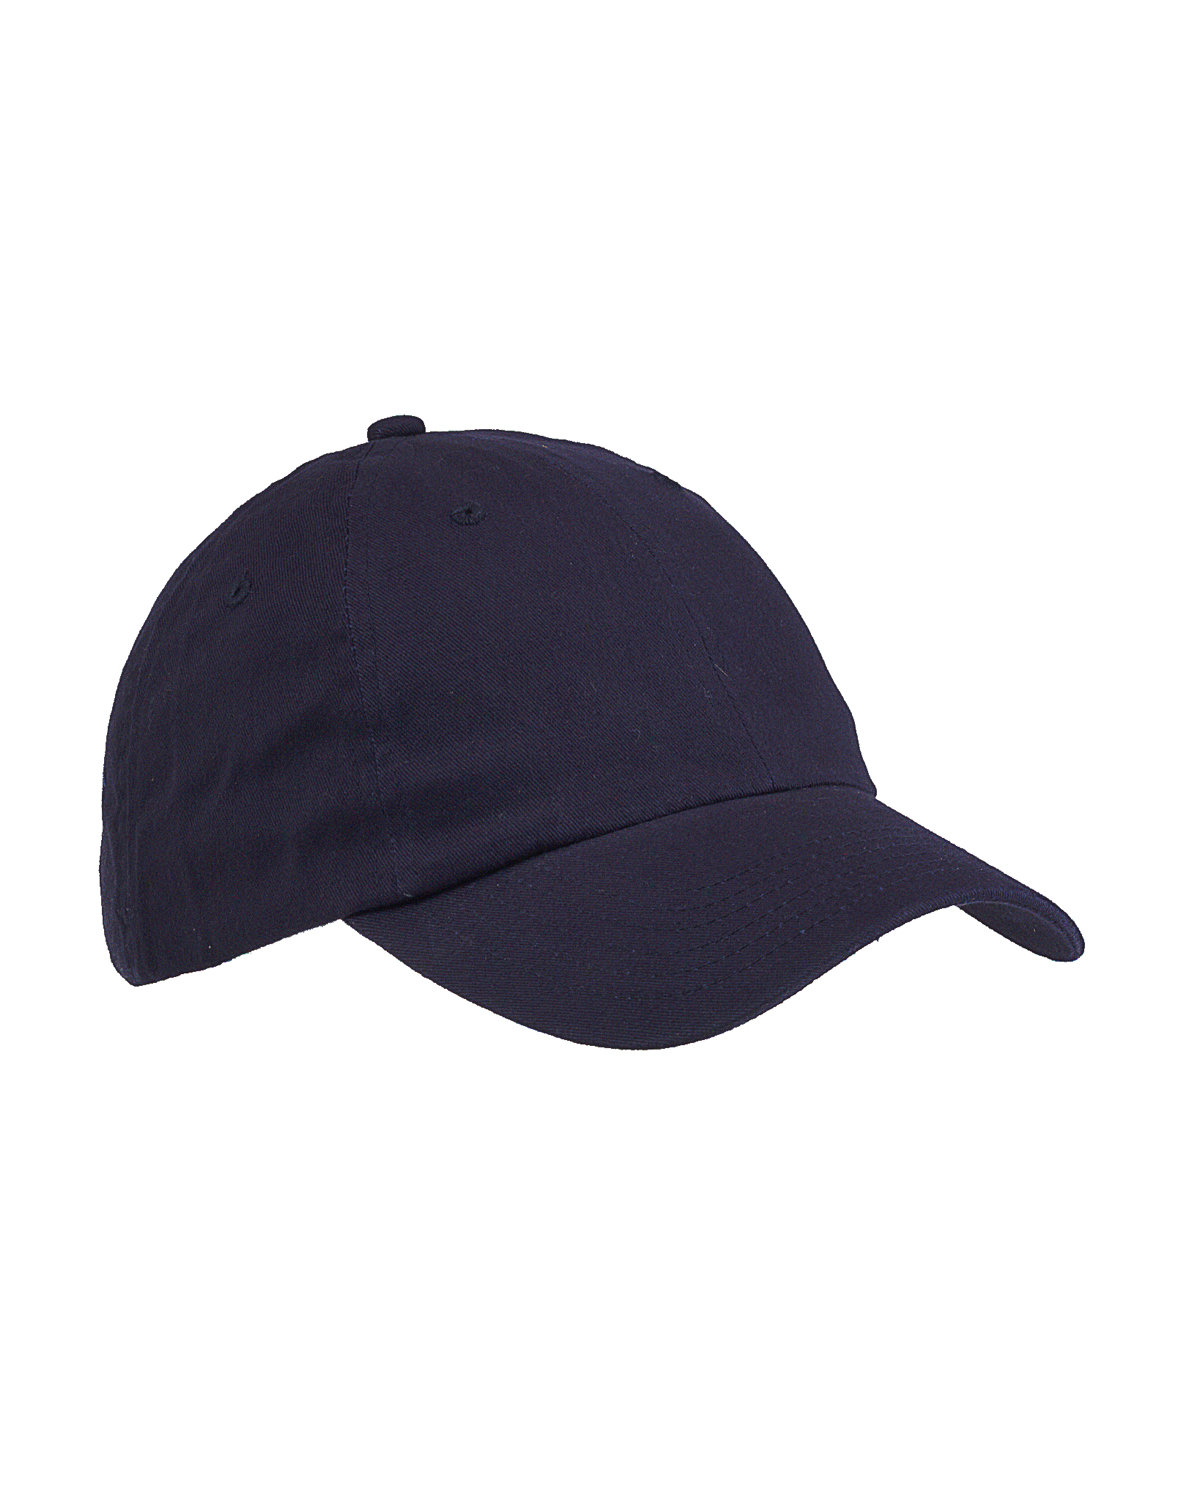 Big Accessories 6-Panel Brushed Twill Unstructured Cap NAVY